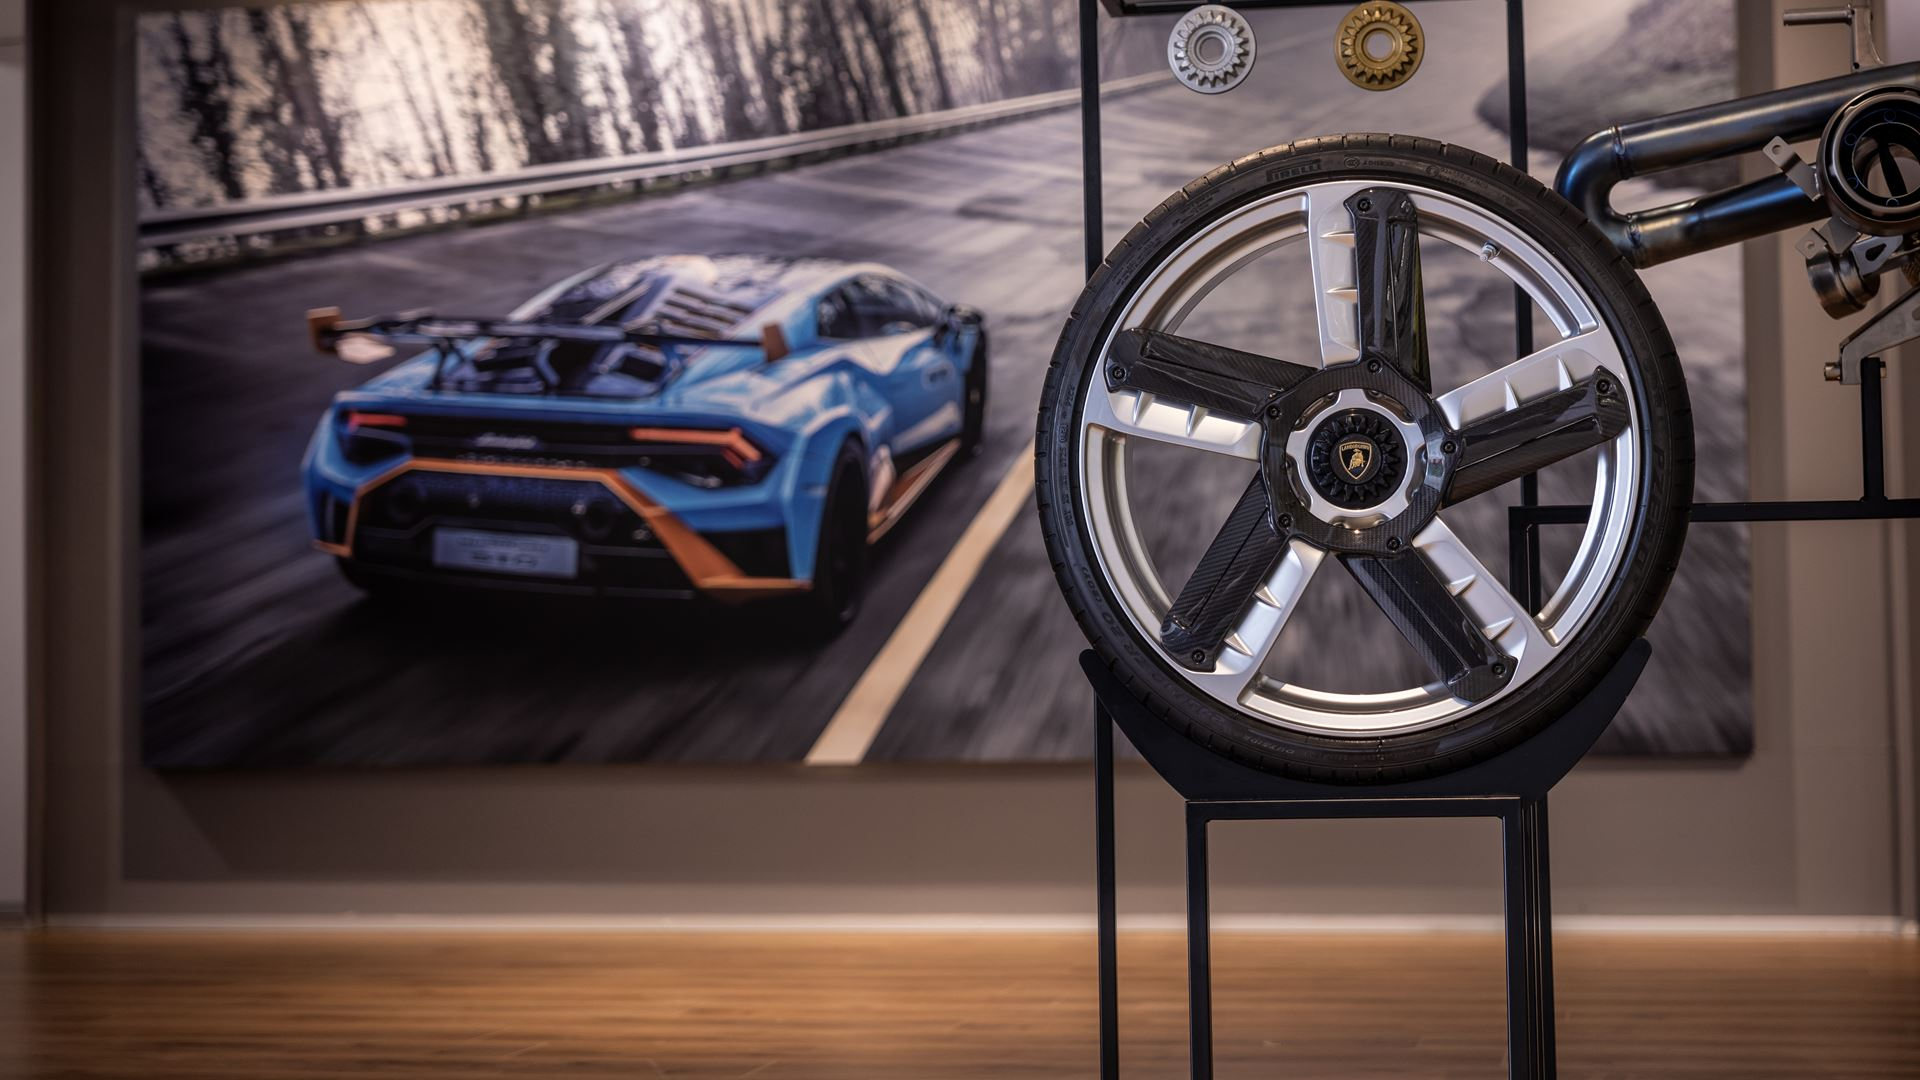 Lamborghini Lounge in Porto Cervo: exclusivity, lifestyle and product innovations, until September - Image 7